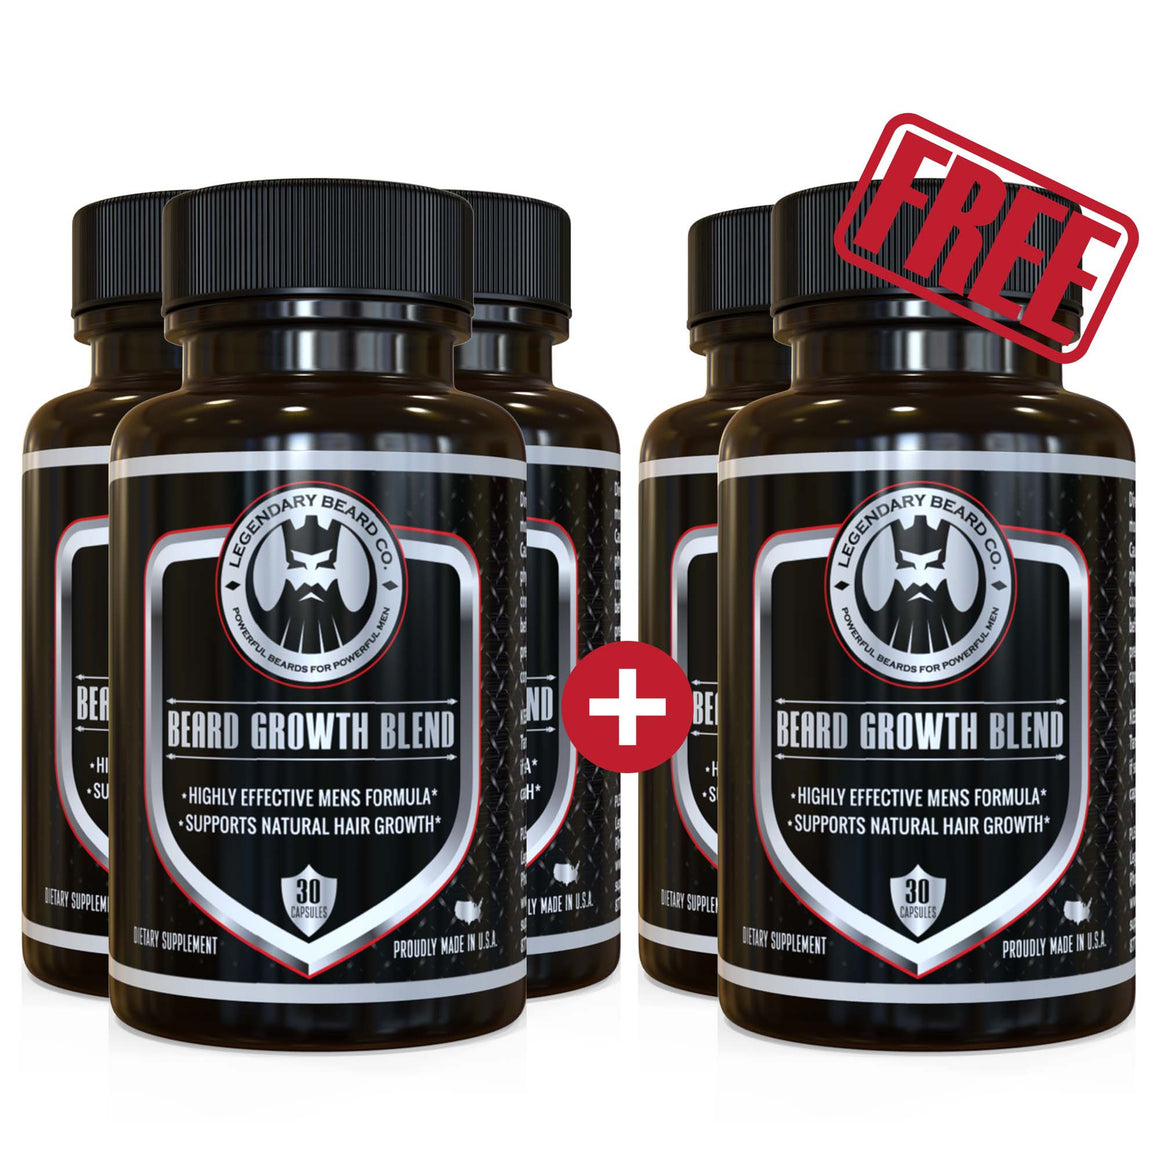 Legendary Beard Growth Blend Buy 3 + Get 2 Free